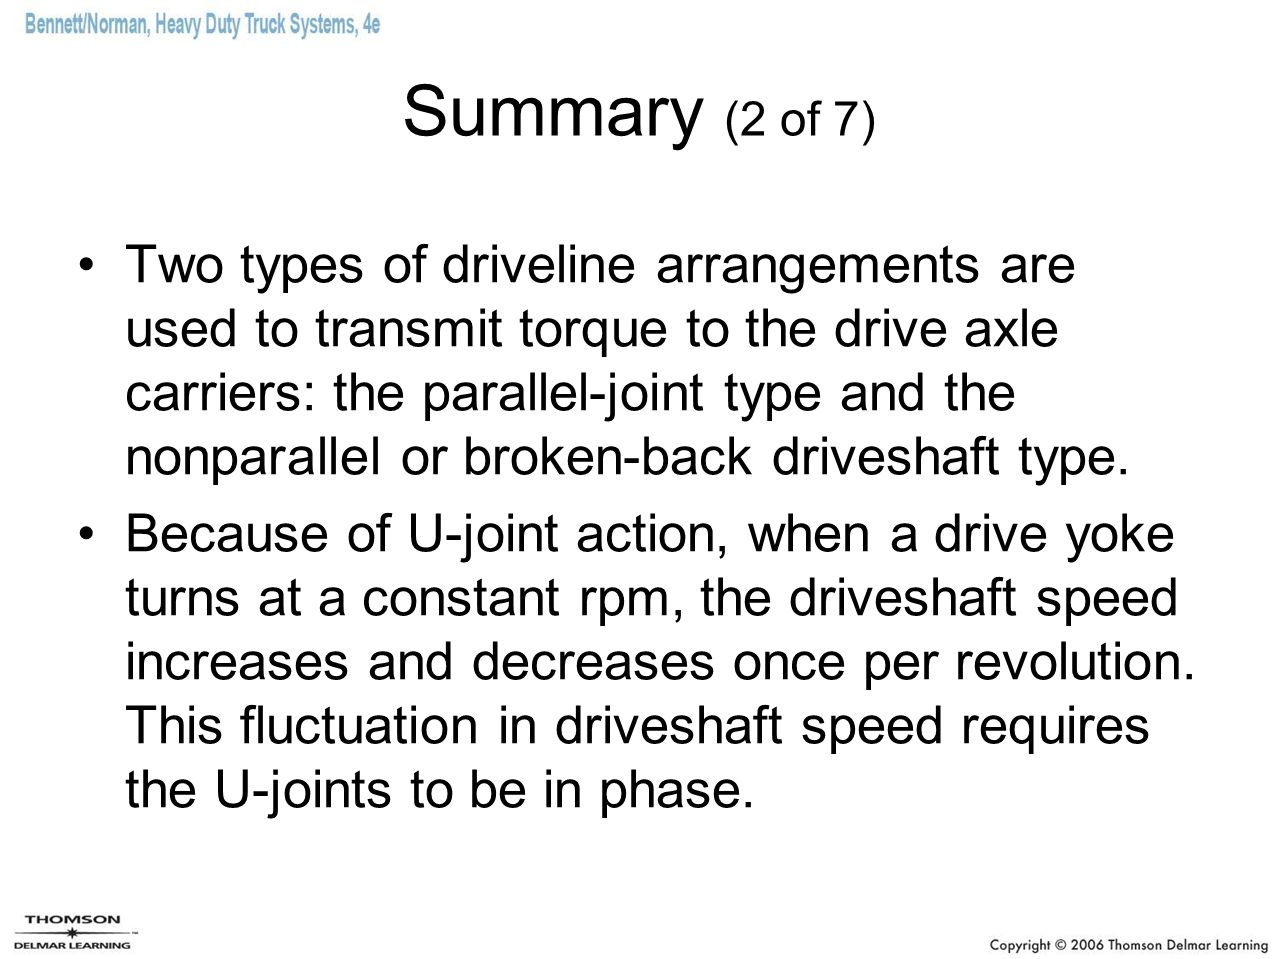 Summary (2 of 7) Two types of driveline arrangements are used to transmit torque to the drive axle carriers: the parallel-joint type and the nonparall